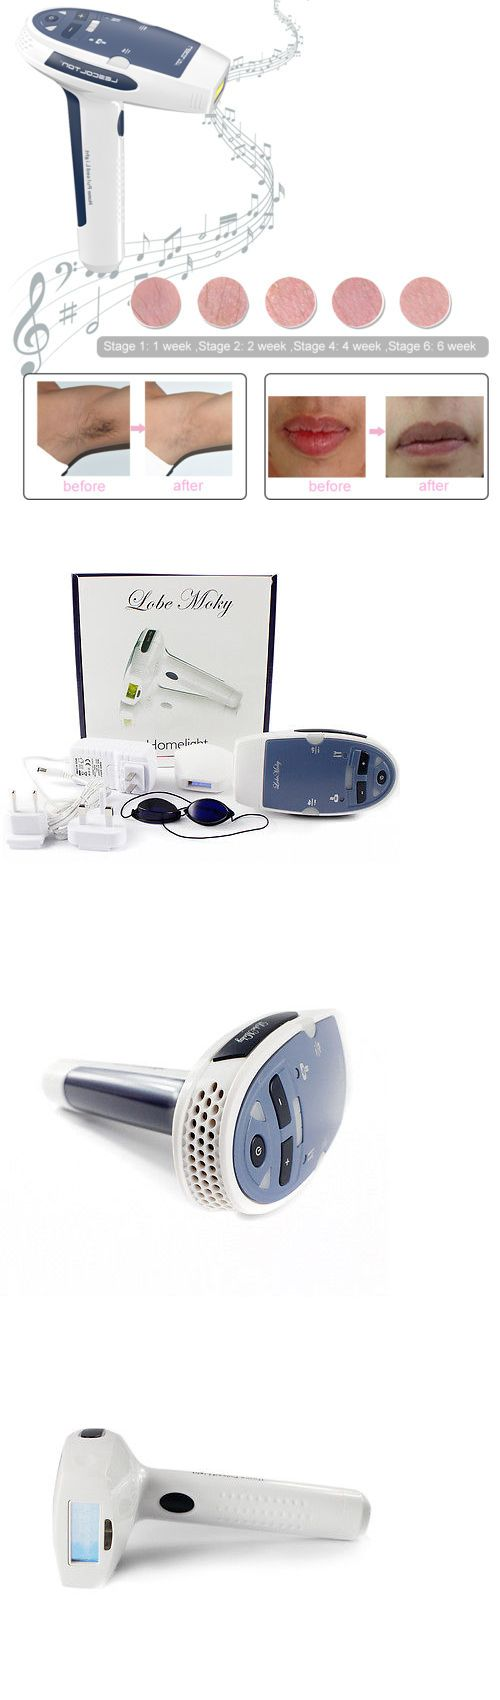 Laser Hair Removal and IPL: Home Use Ipl Permanent Laser Skin Rejuvenation Device For Body Hair Removal -> BUY IT NOW ONLY: $69.25 on eBay!